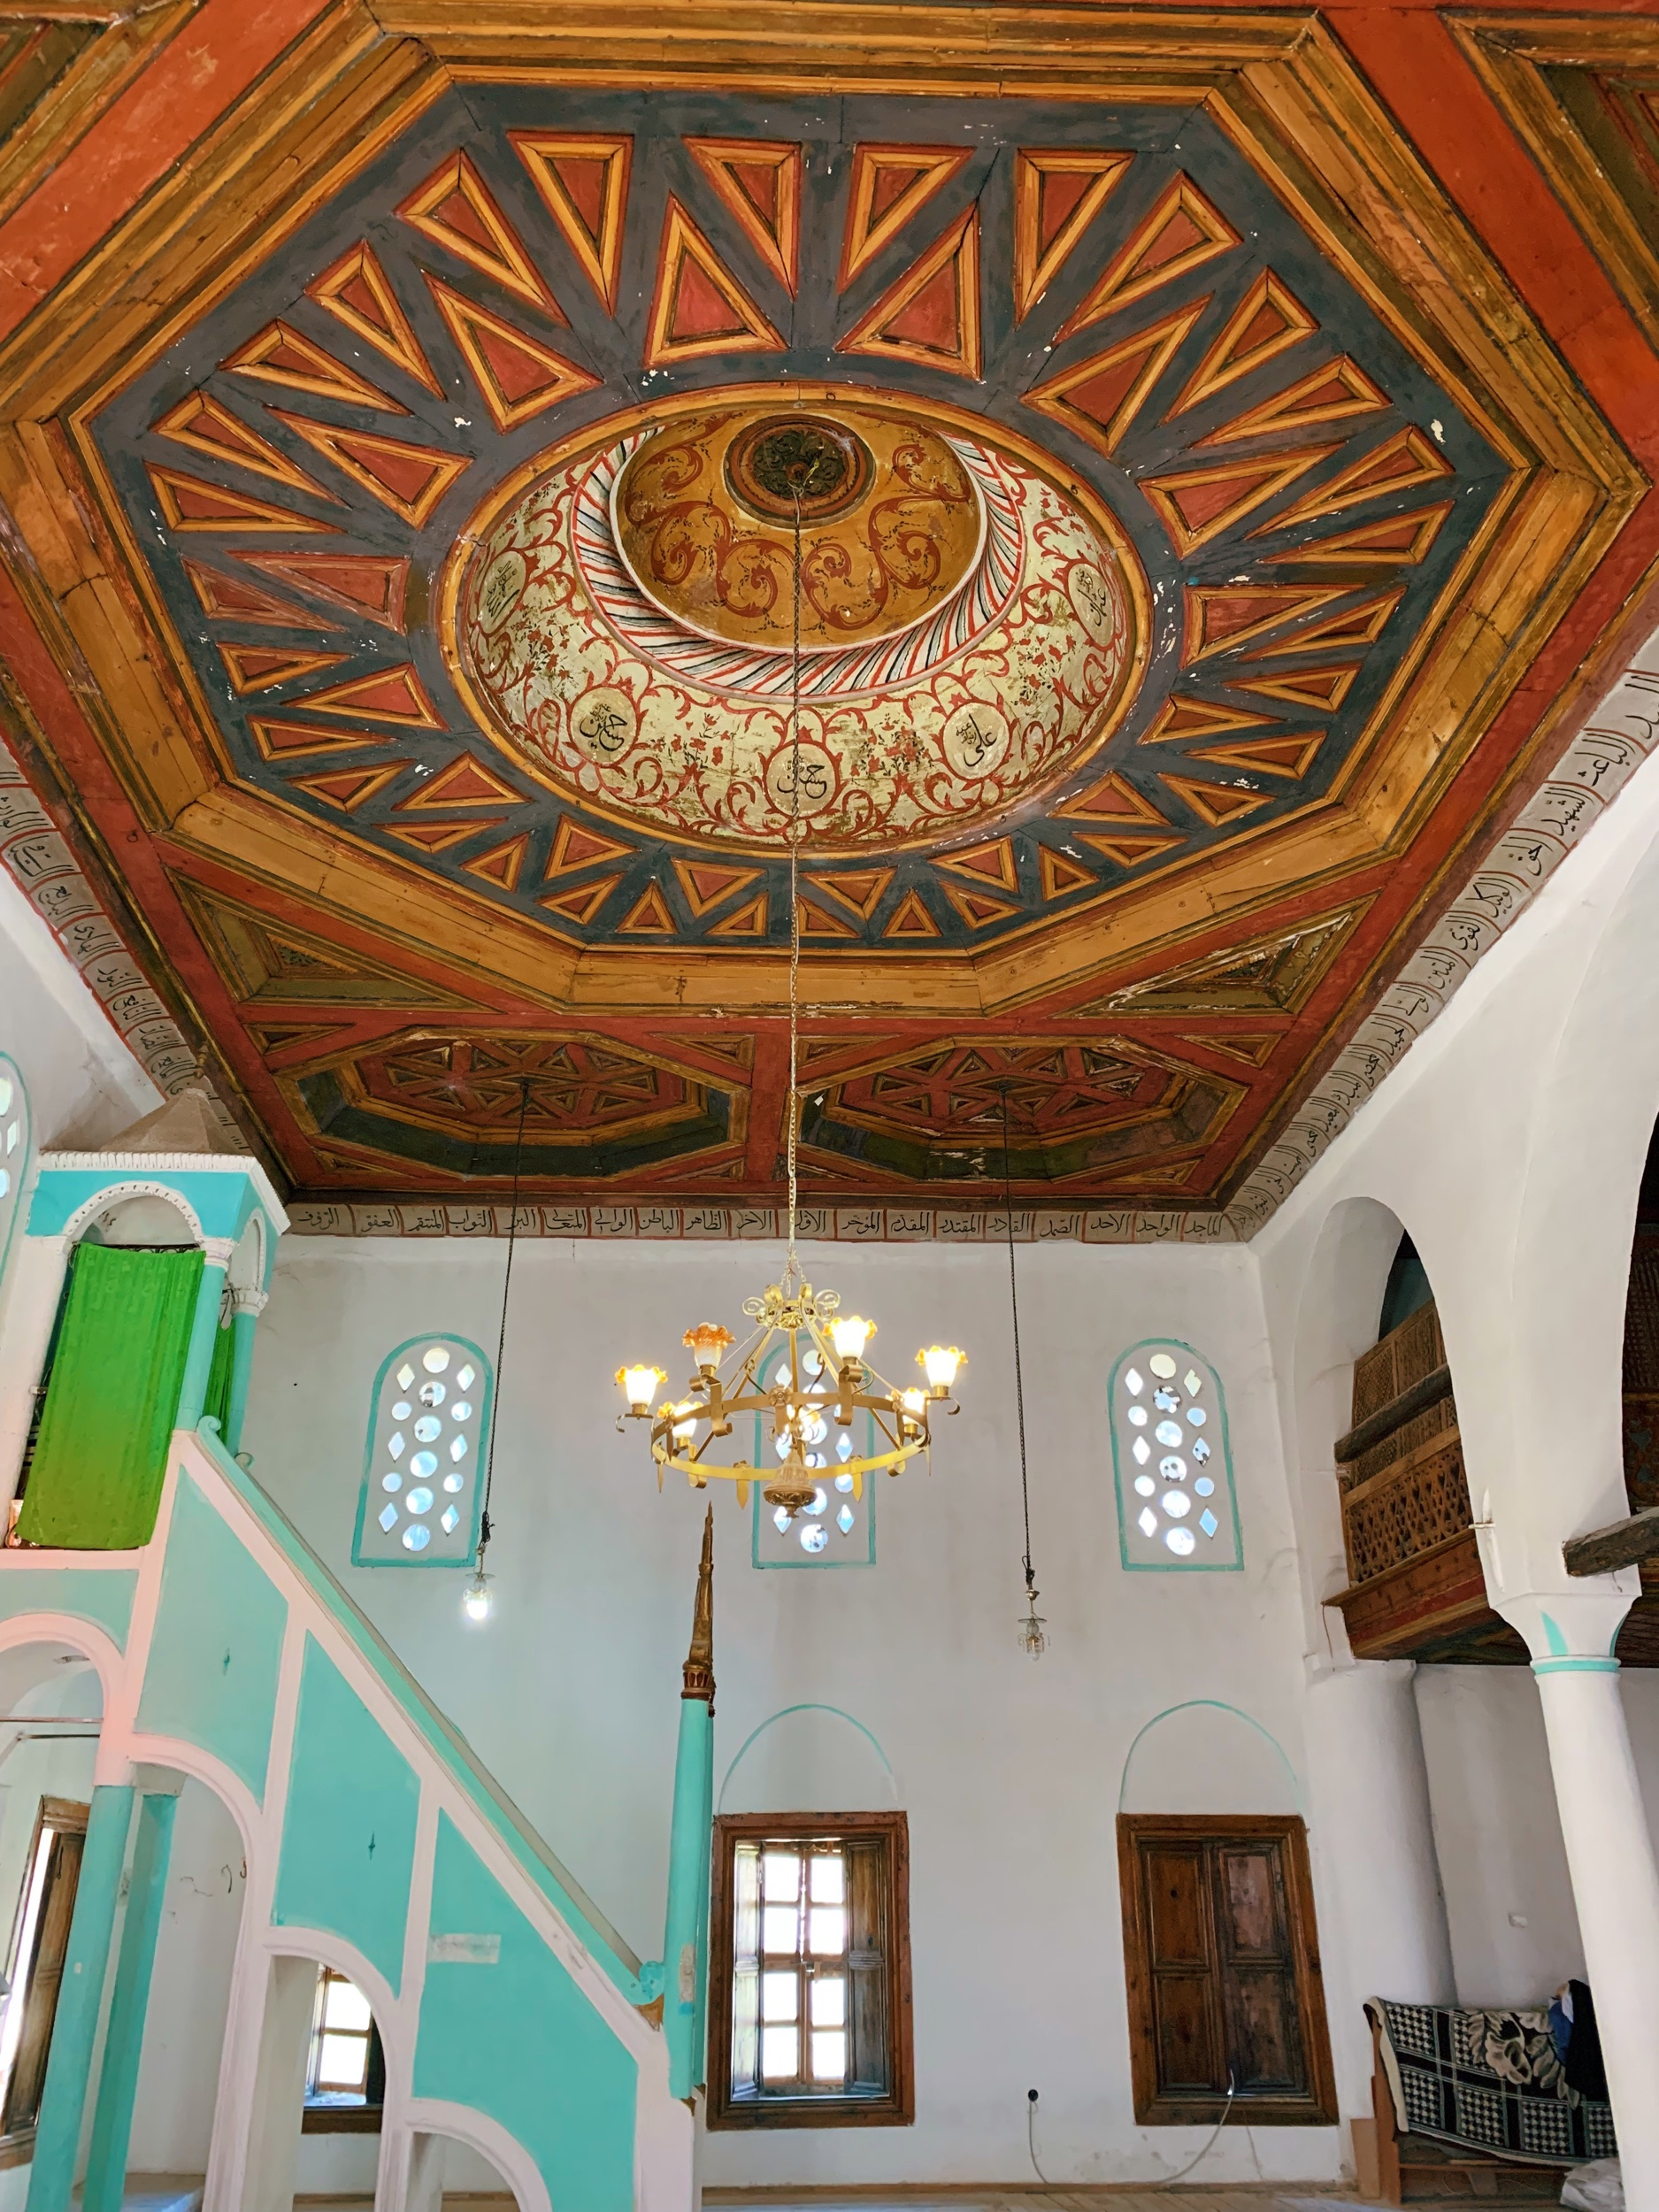 The King Mosque dates back to 1490 and is the oldest still-working mosque in Albania.